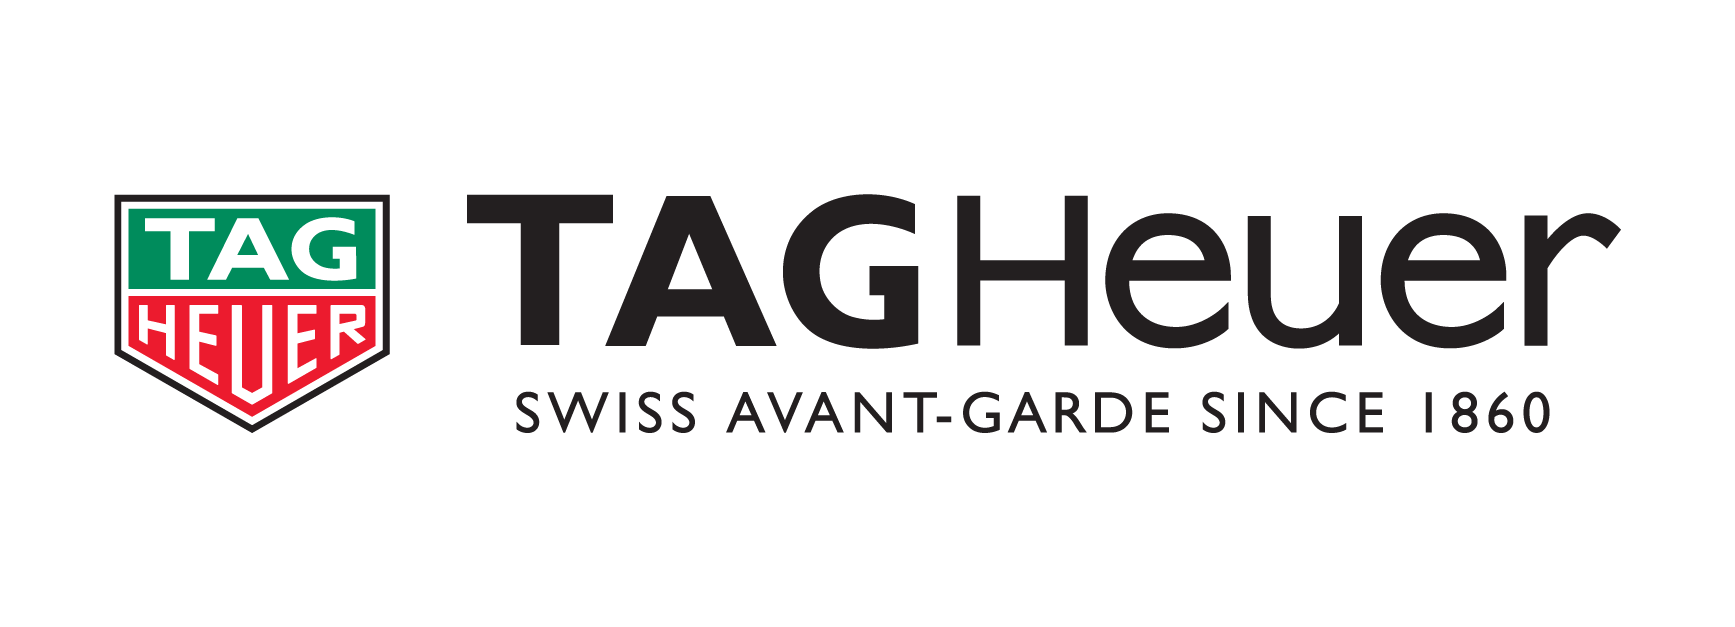 logo for TAG Heuer